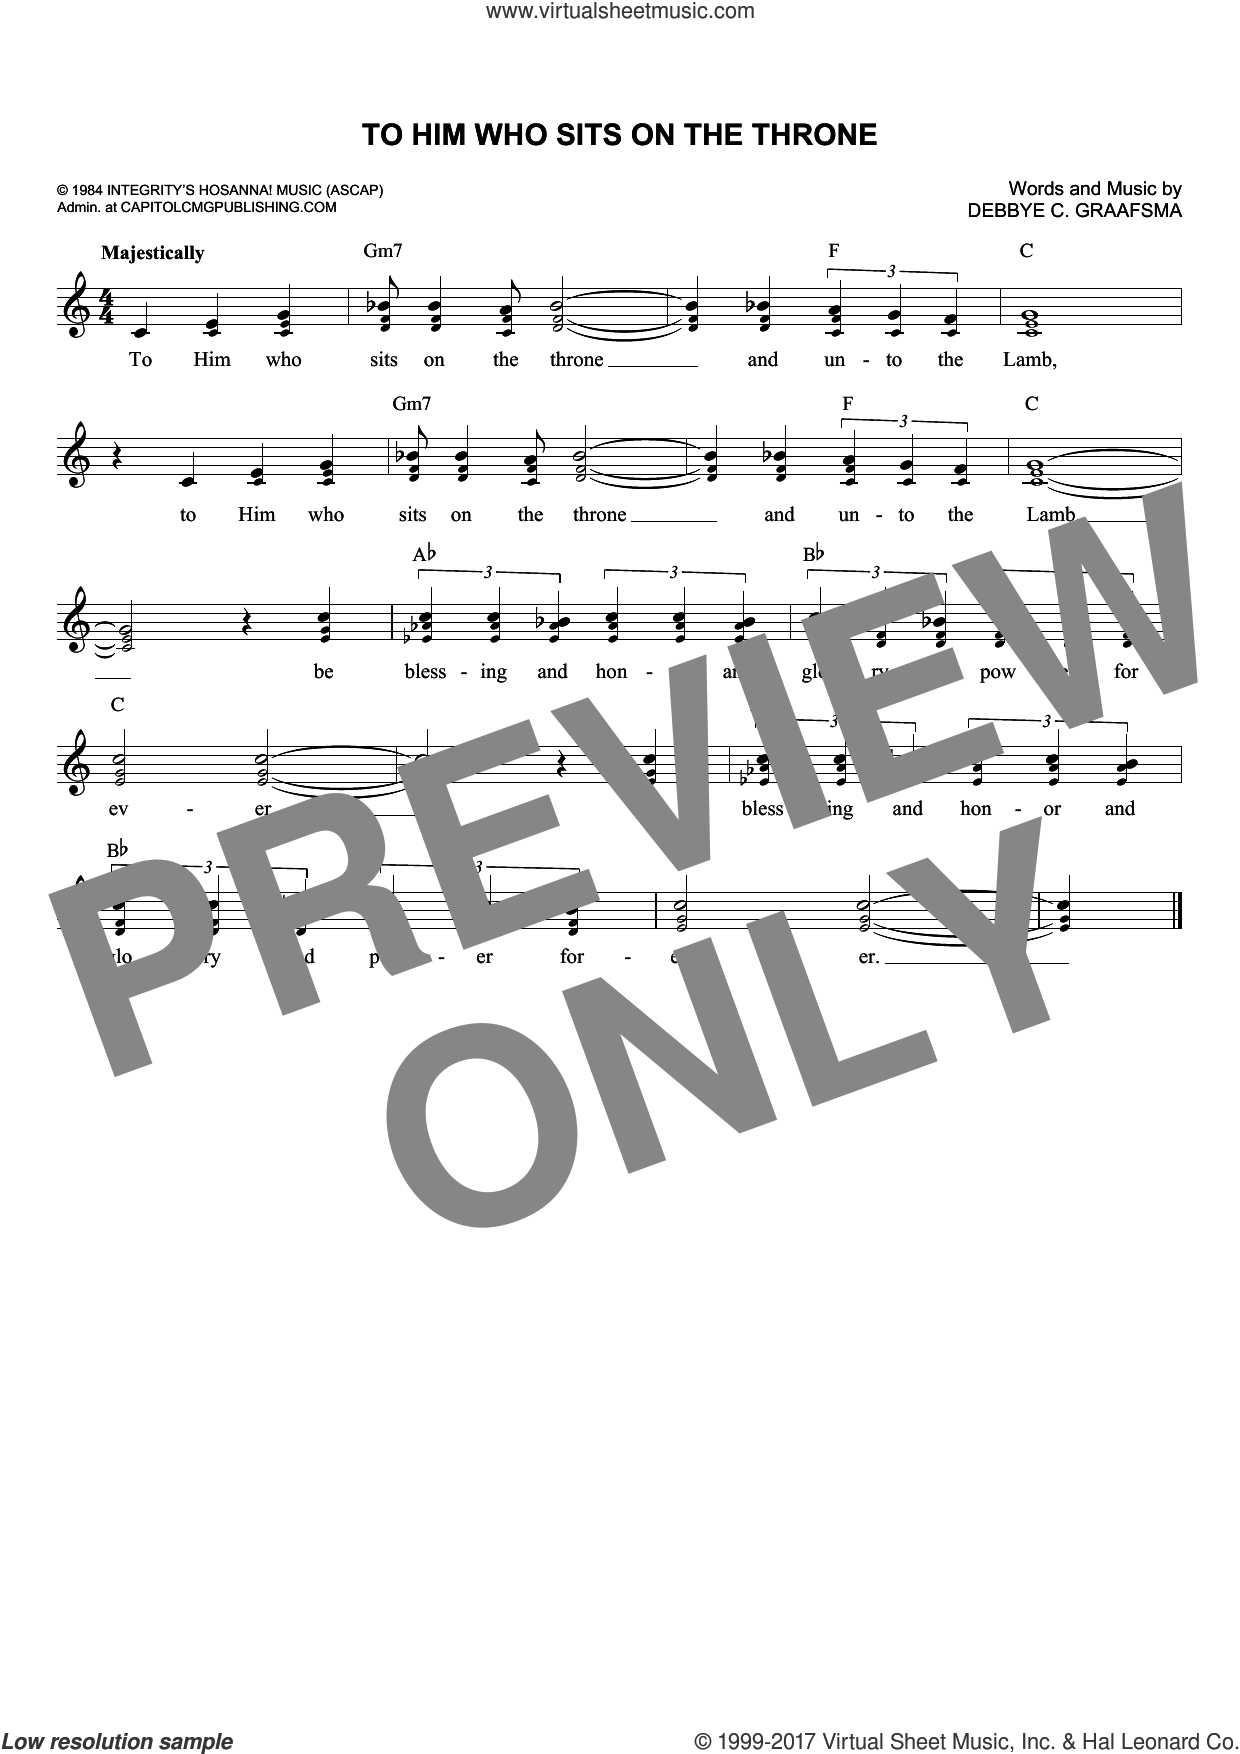 To Him Who Sits On The Throne sheet music for voice and other instruments (fake book) by Debbye C. Graafsma, intermediate voice. Score Image Preview.